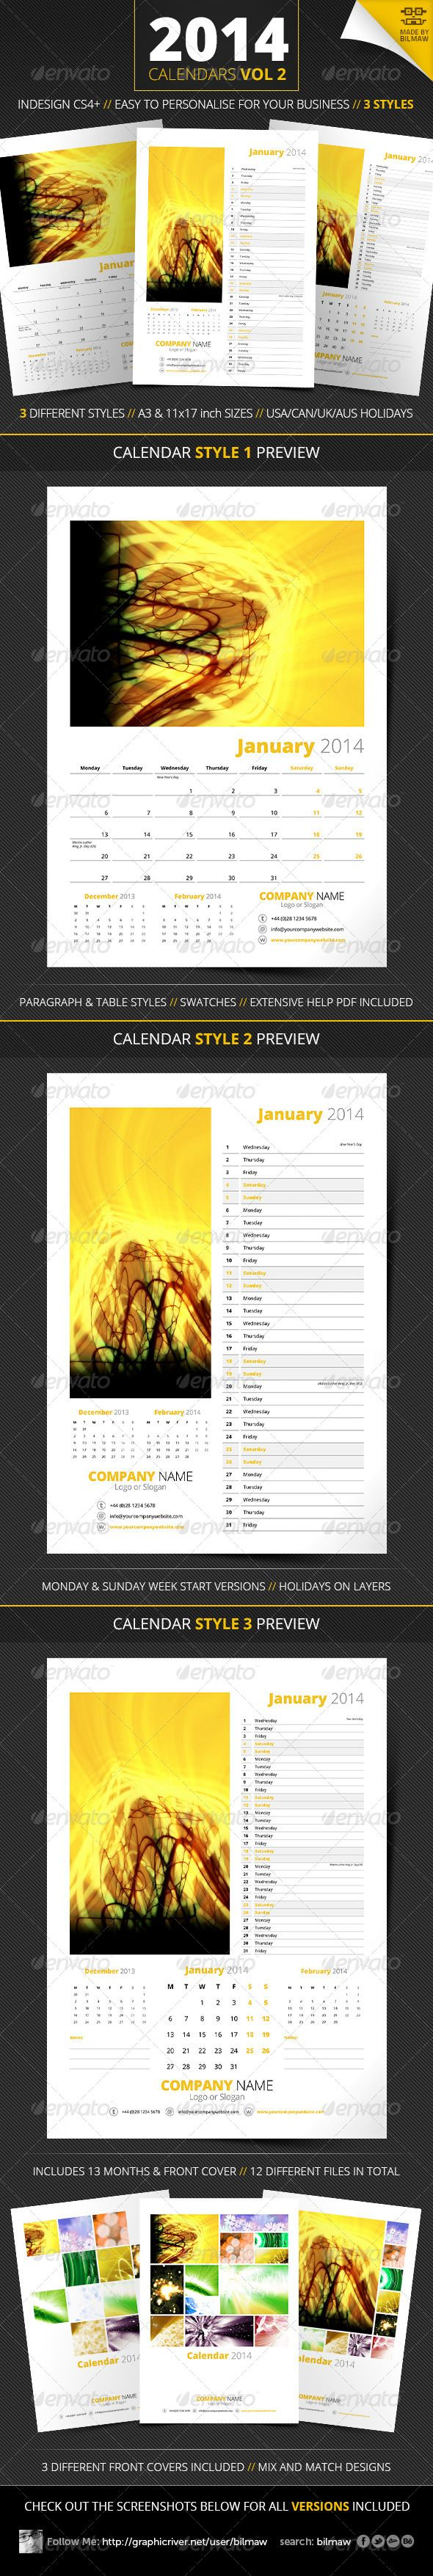 Delighted 100 Free Resume Builder Tiny 1099 Template Excel Shaped 15 Year Old Resume Sample 2 Page Resume Design Old 2014 Calendar Template Monthly Yellow2015 Calendar Planner Template 25  Best Ideas About 2016 Calendar Canada On Pinterest | Royals ..